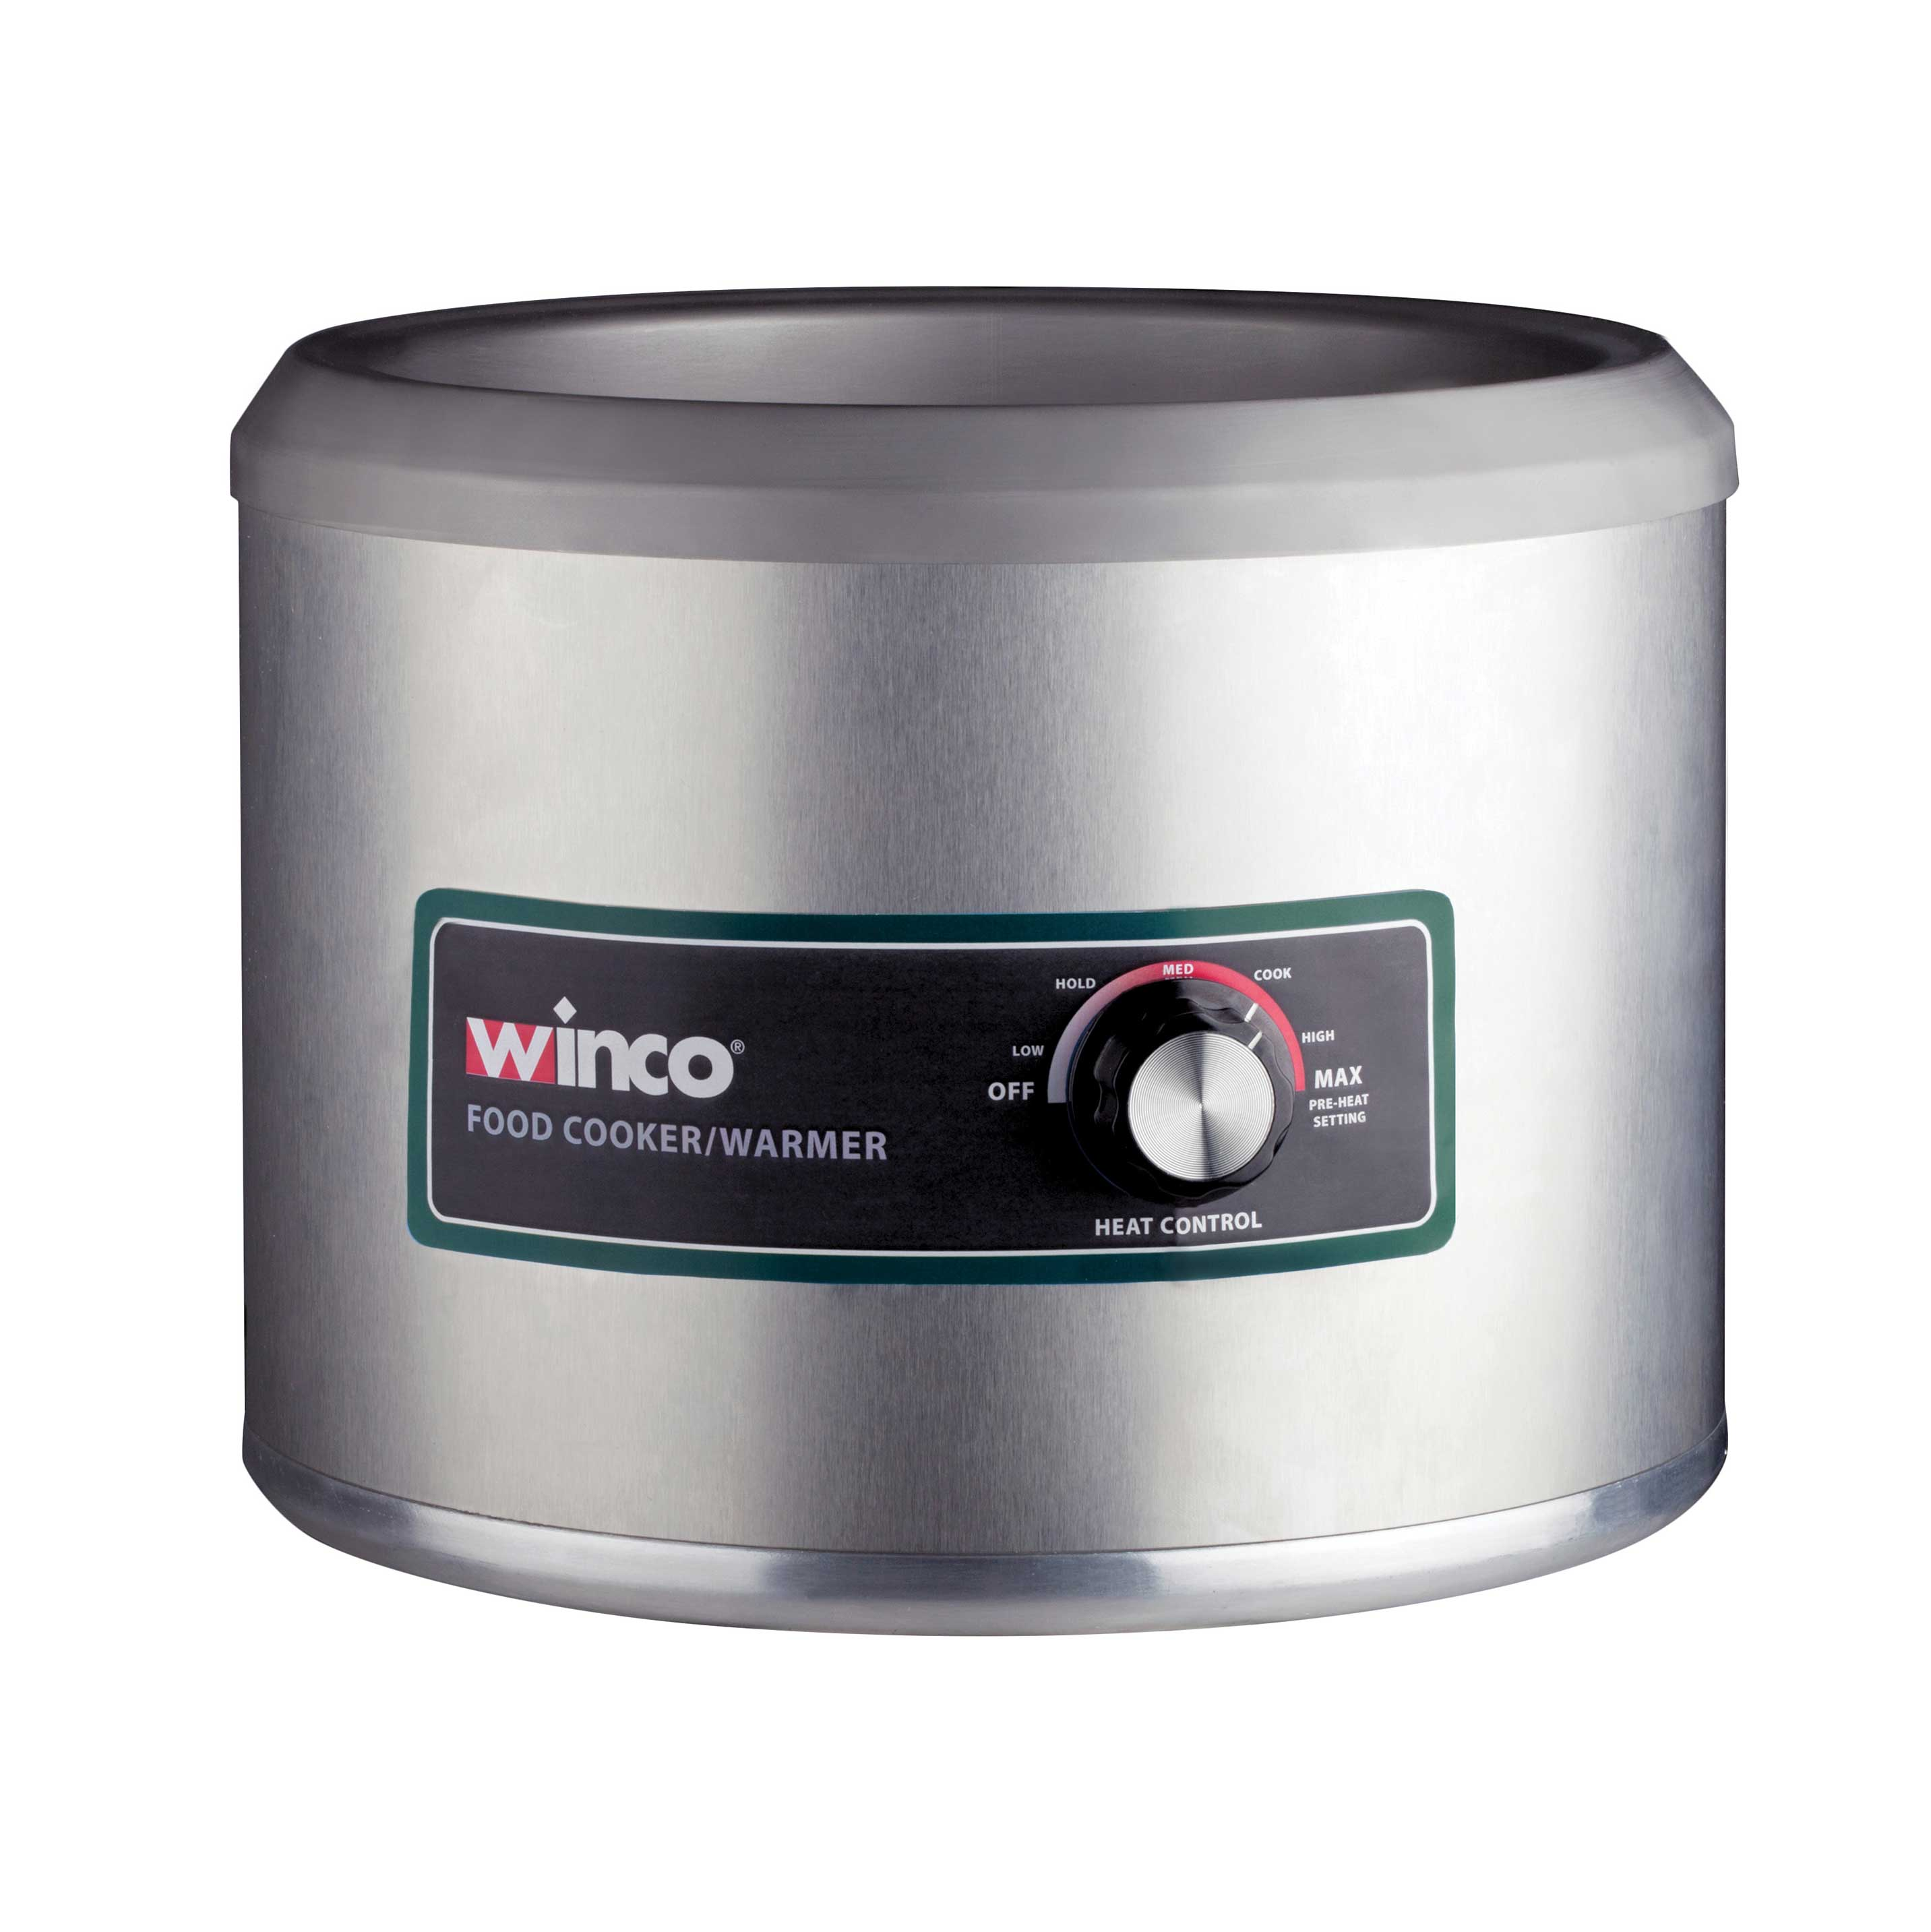 Winco FW-11R500 food pan warmer/cooker, countertop